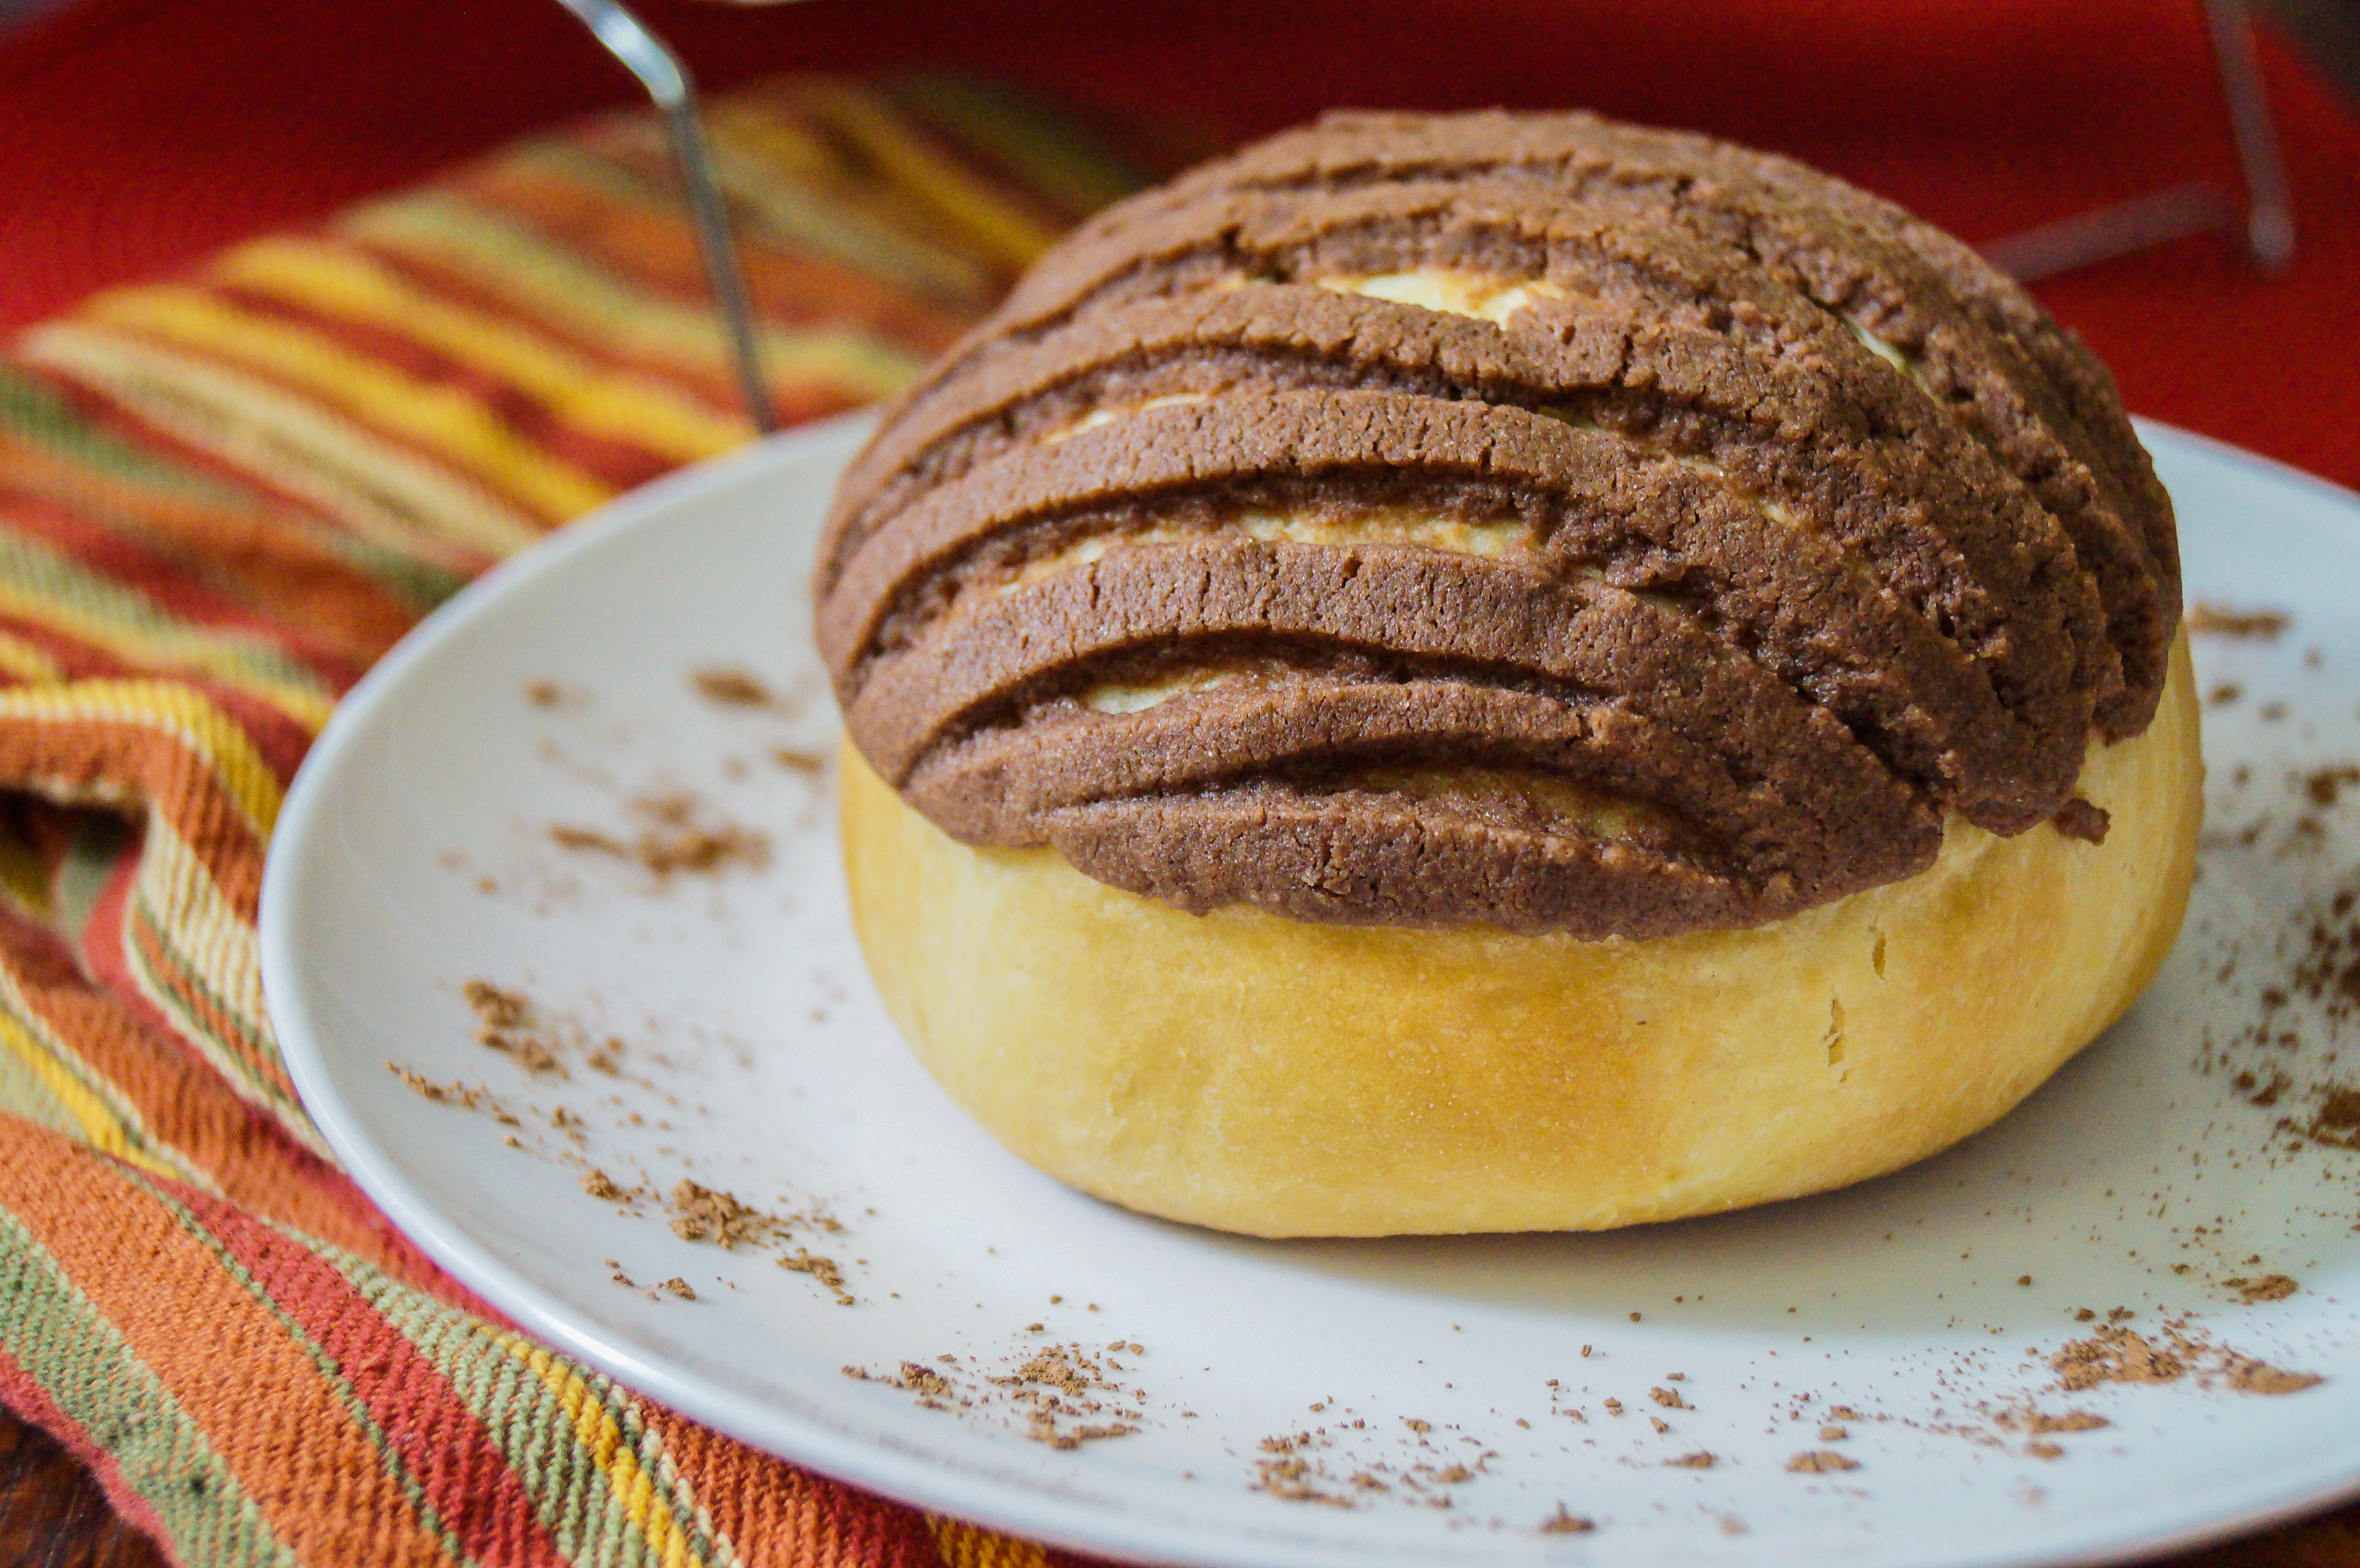 Chocolate Conchas (Mexican Chocolate Shell Pastries)